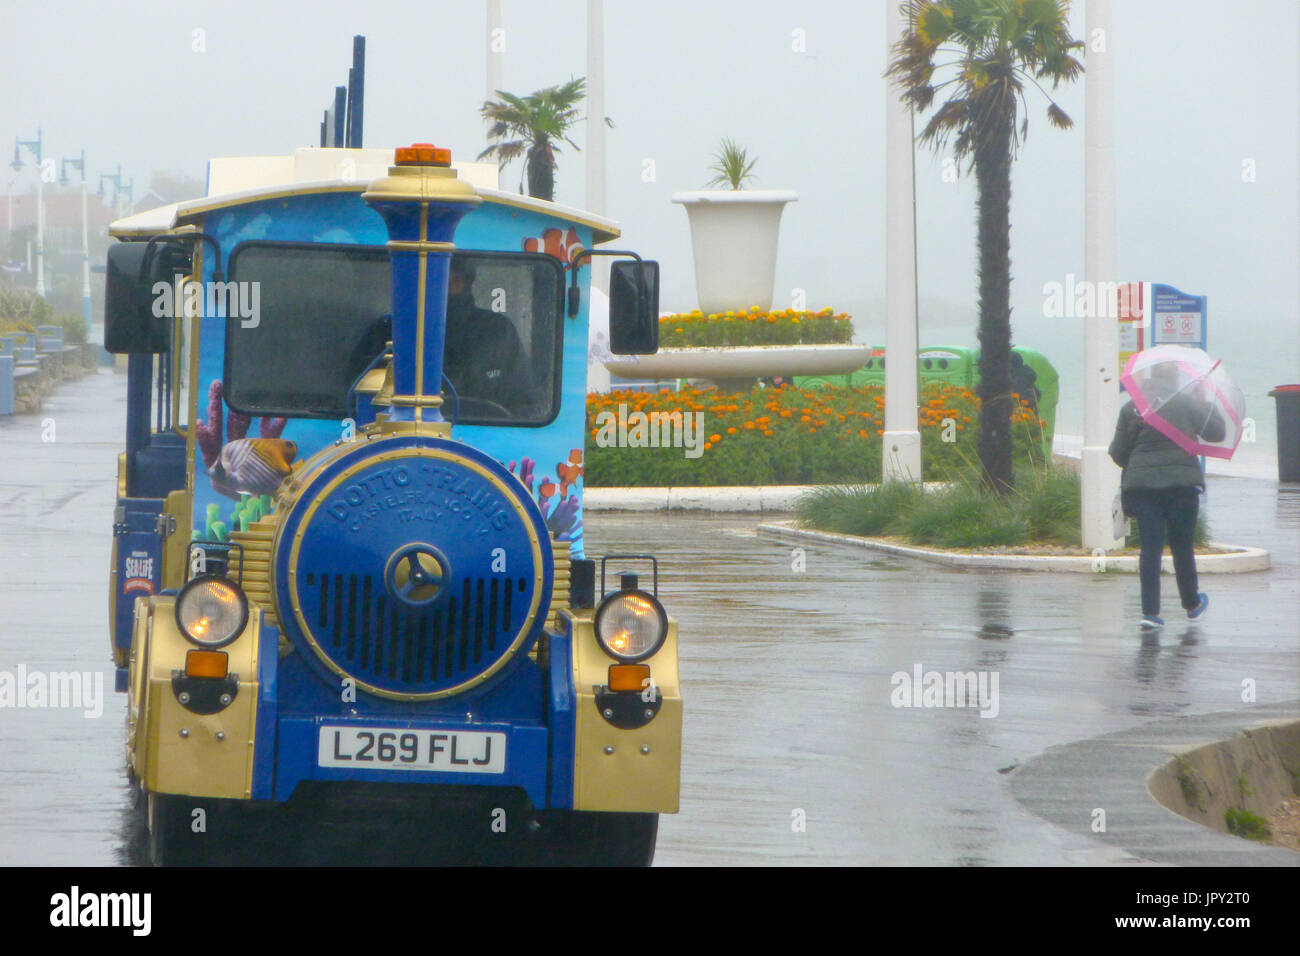 Weymouth, UK. 2nd Aug, 2017. People make the most of a day of non-stop torrential rain on Weymouth sands, with a ride along the promenade on the land train Credit: stuart fretwell/Alamy Live News - Stock Image